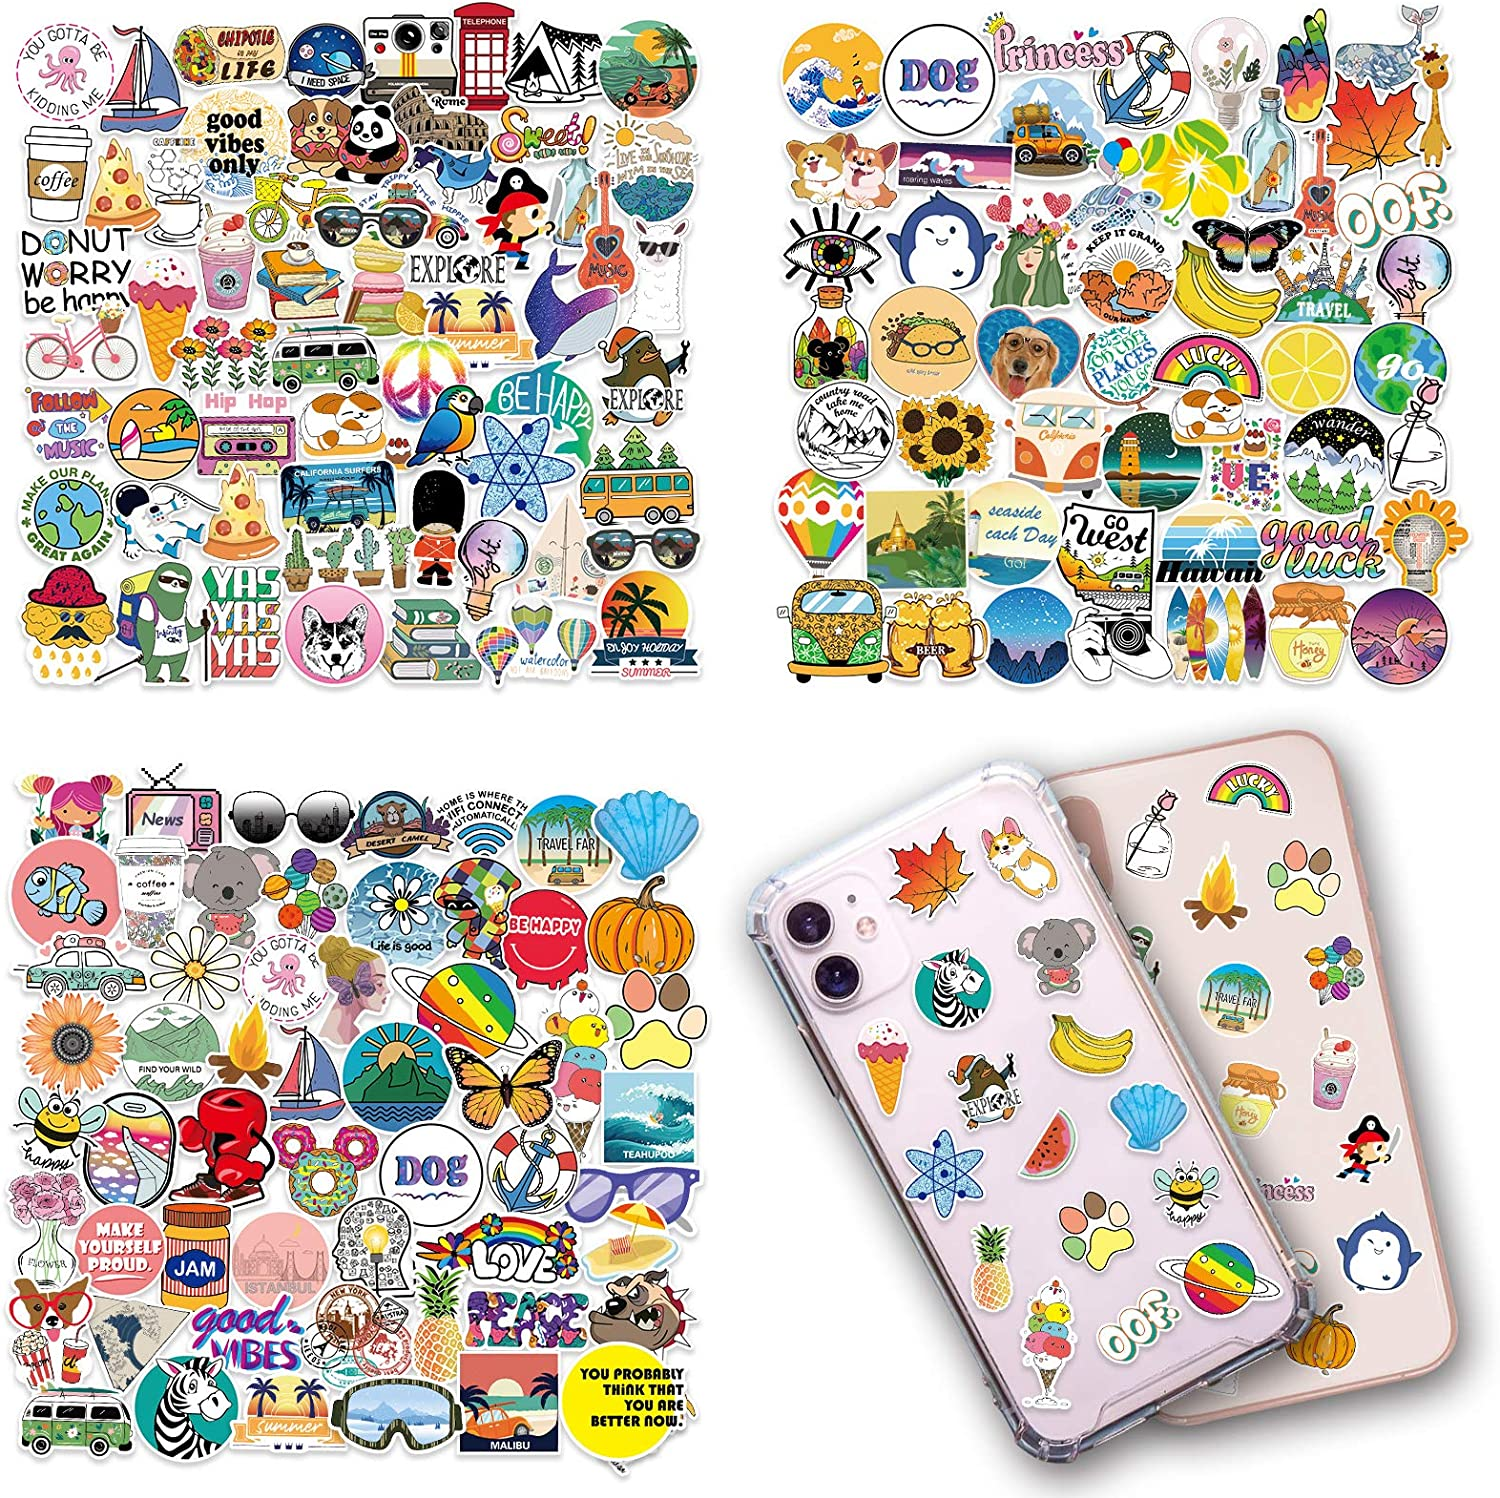 200 pcs Mini Stickers, Phone Case Stickers Vsco Waterproof Vinyl Small Stickers Mixed 4 Sheets for Airpods Case, Laptop, iPad, Water Bottle, Cup, Mug, Notebook